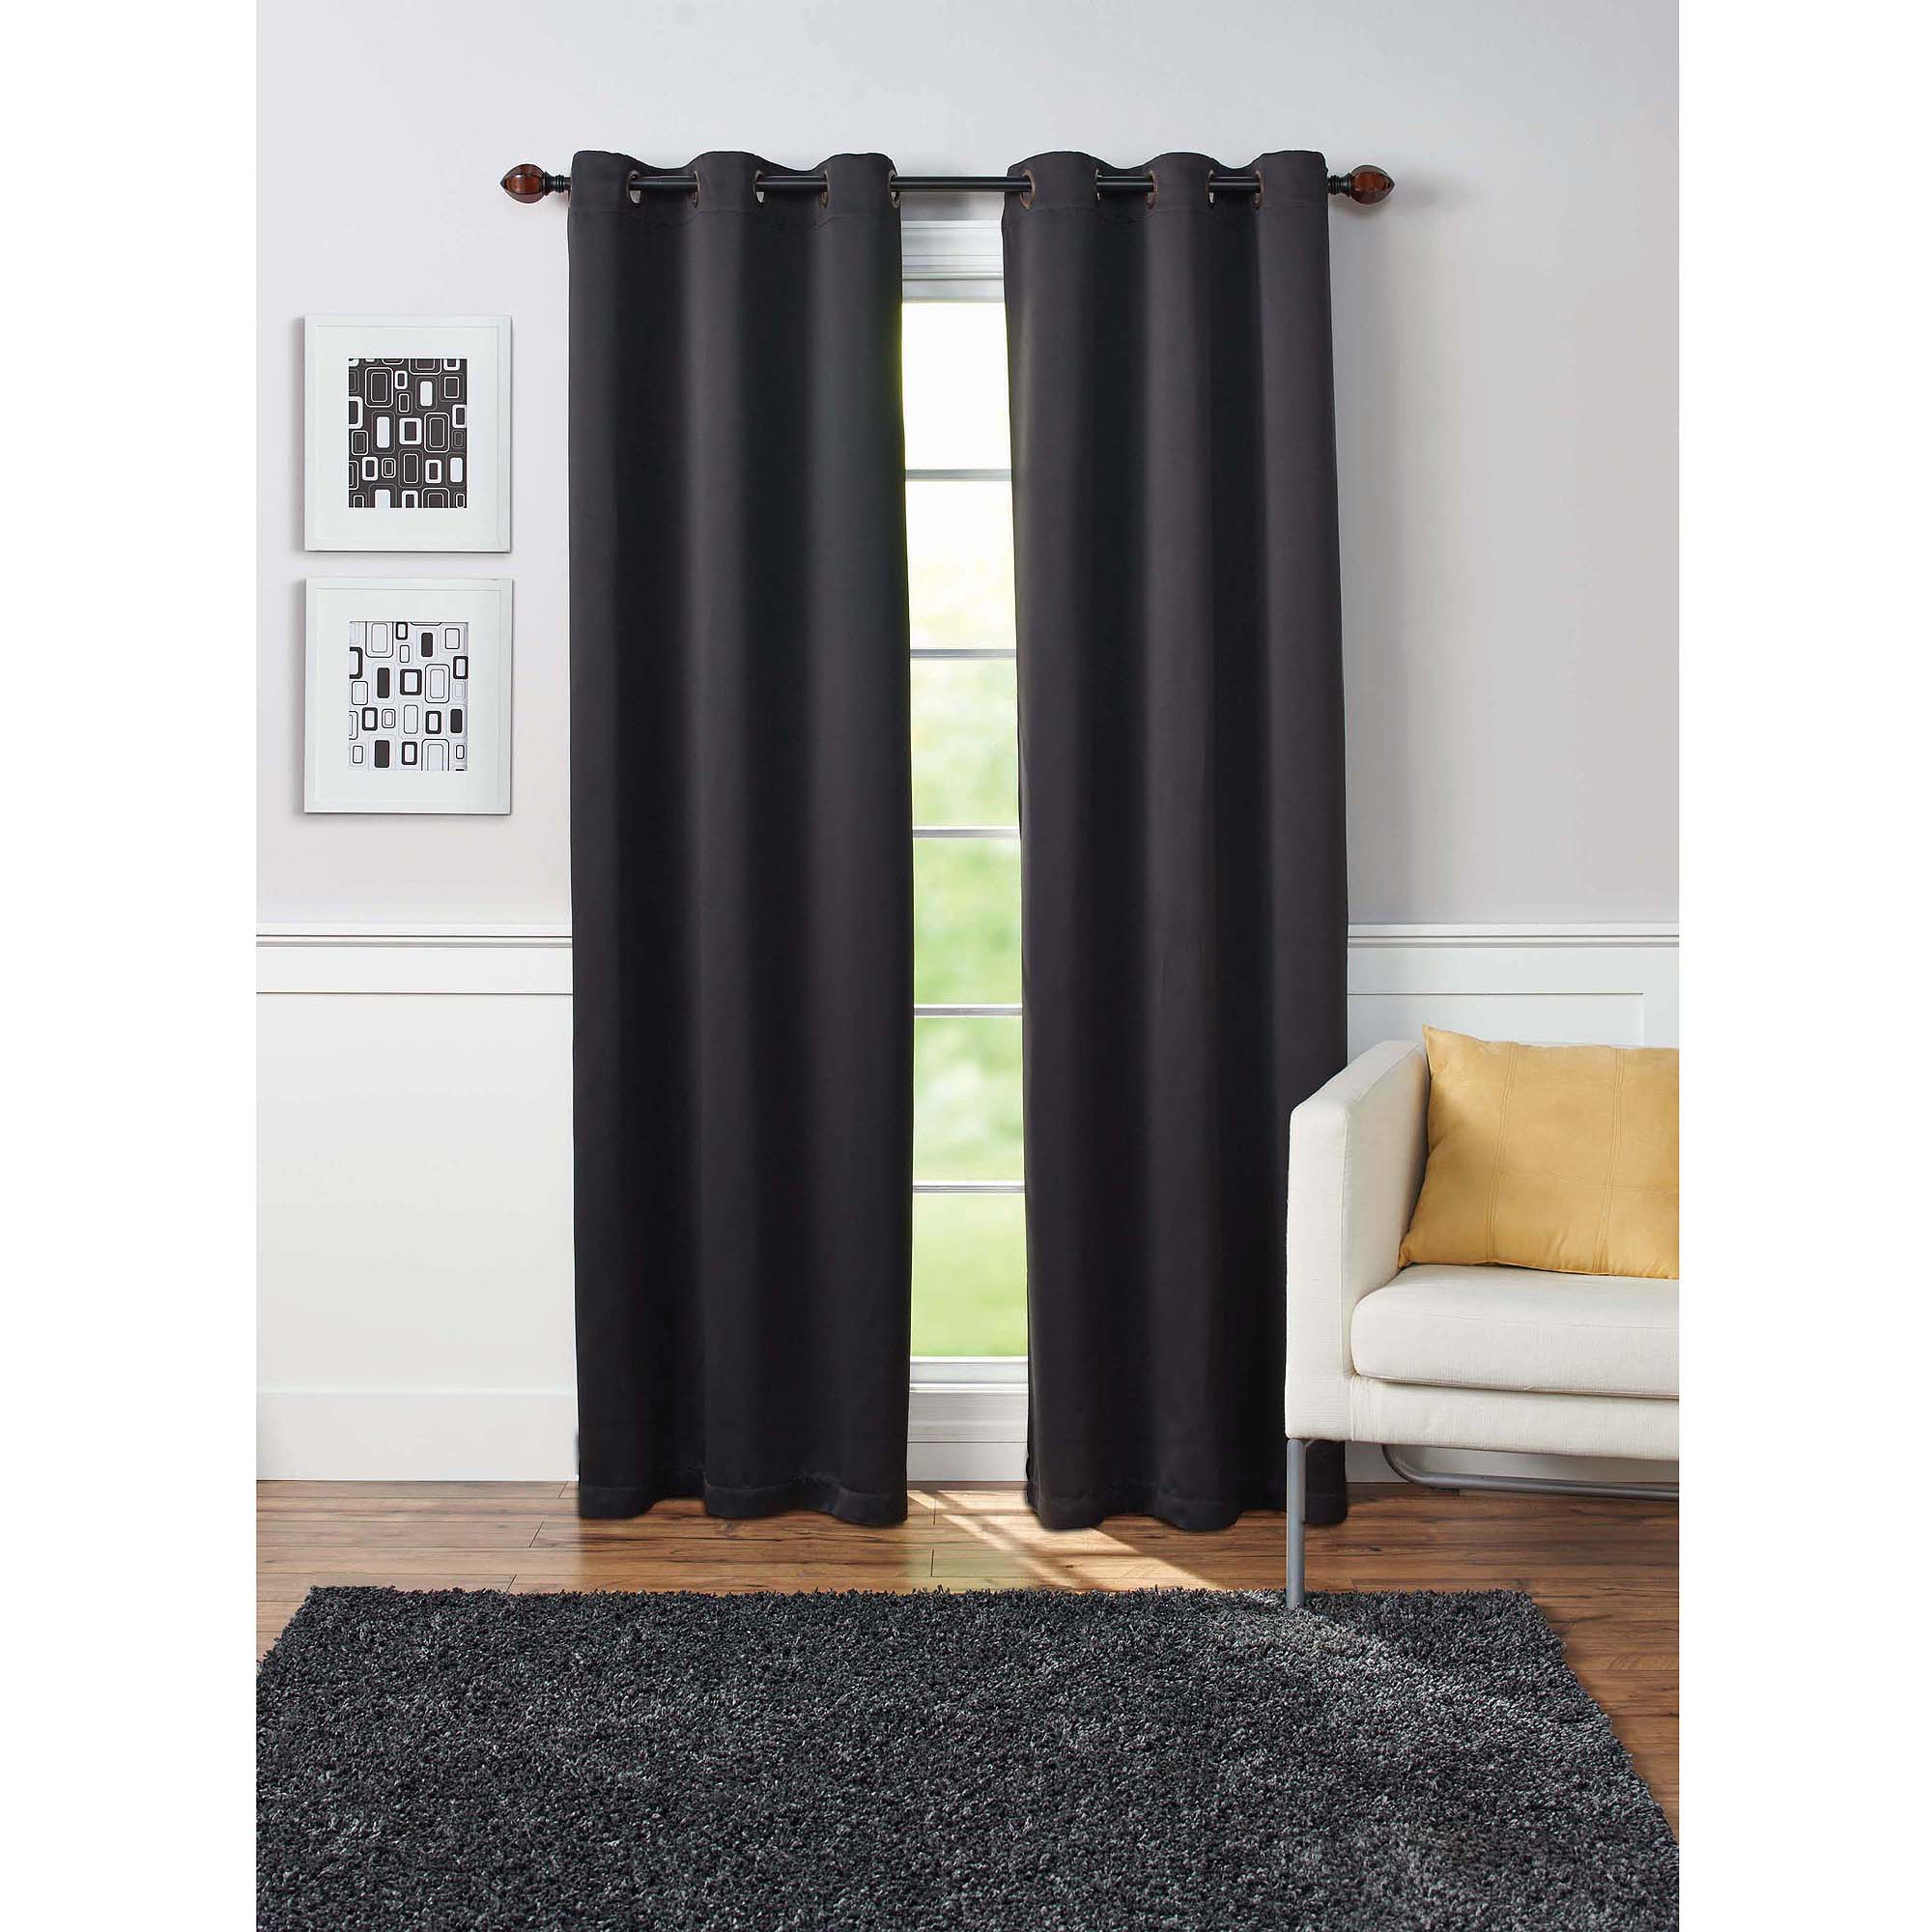 Black And White Color Block Curtains Black Velvet Damask Curtains